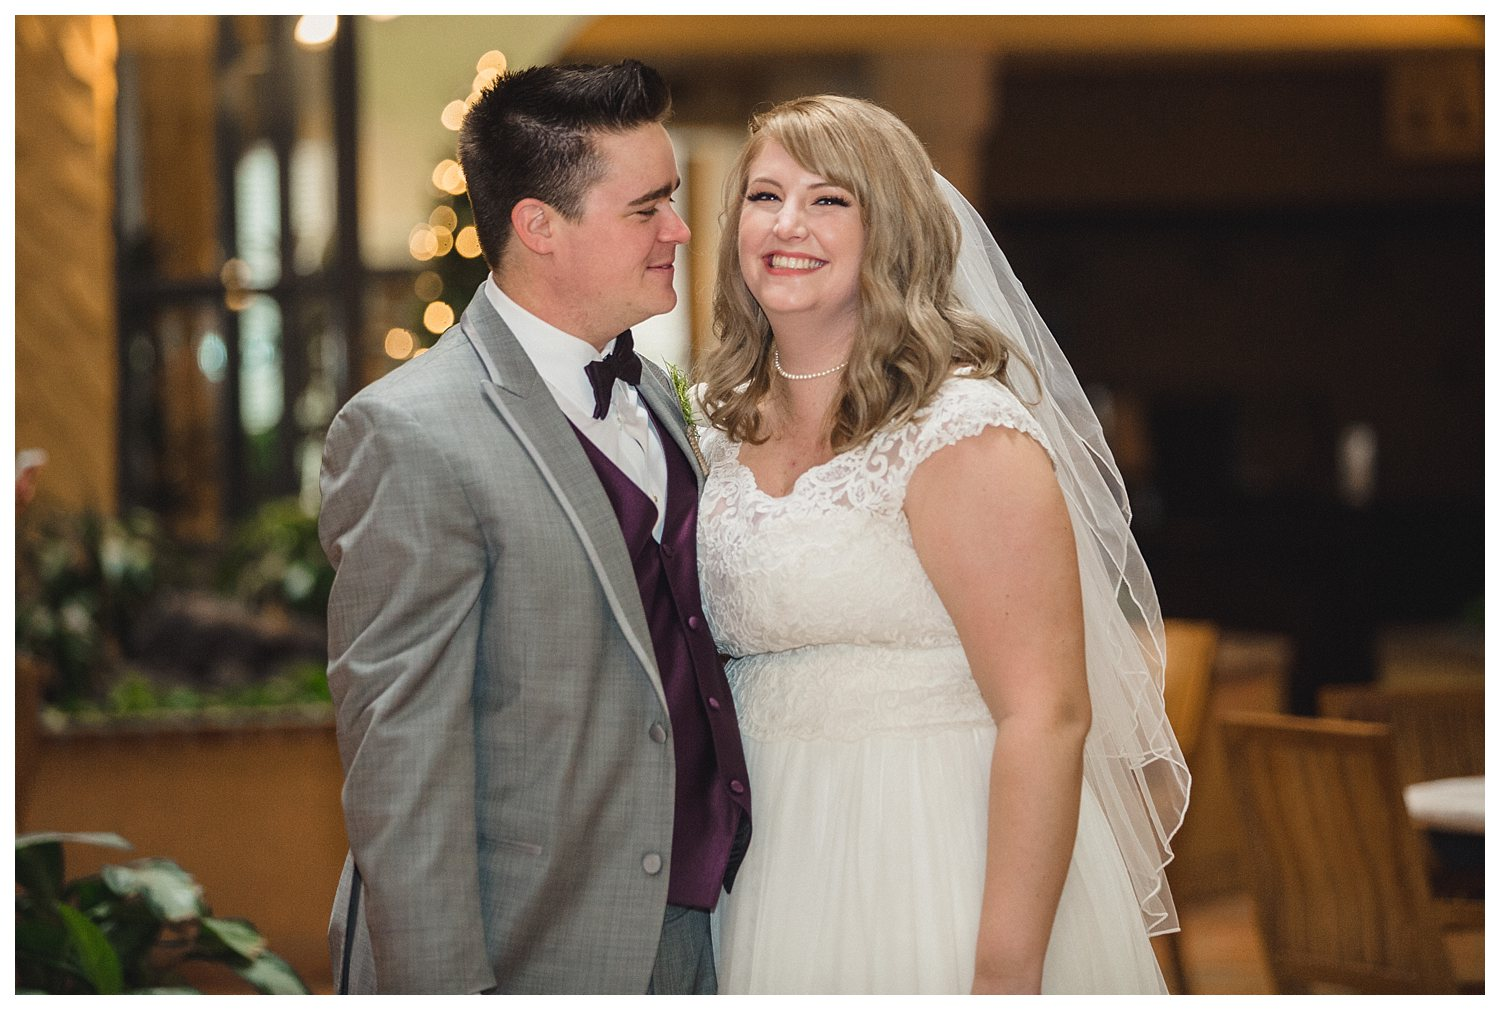 Kelsey_Diane_Photography_Loose_Mansion_Wedding_Photography_Kansas_City_Victor_Lyndsay_0323.jpg